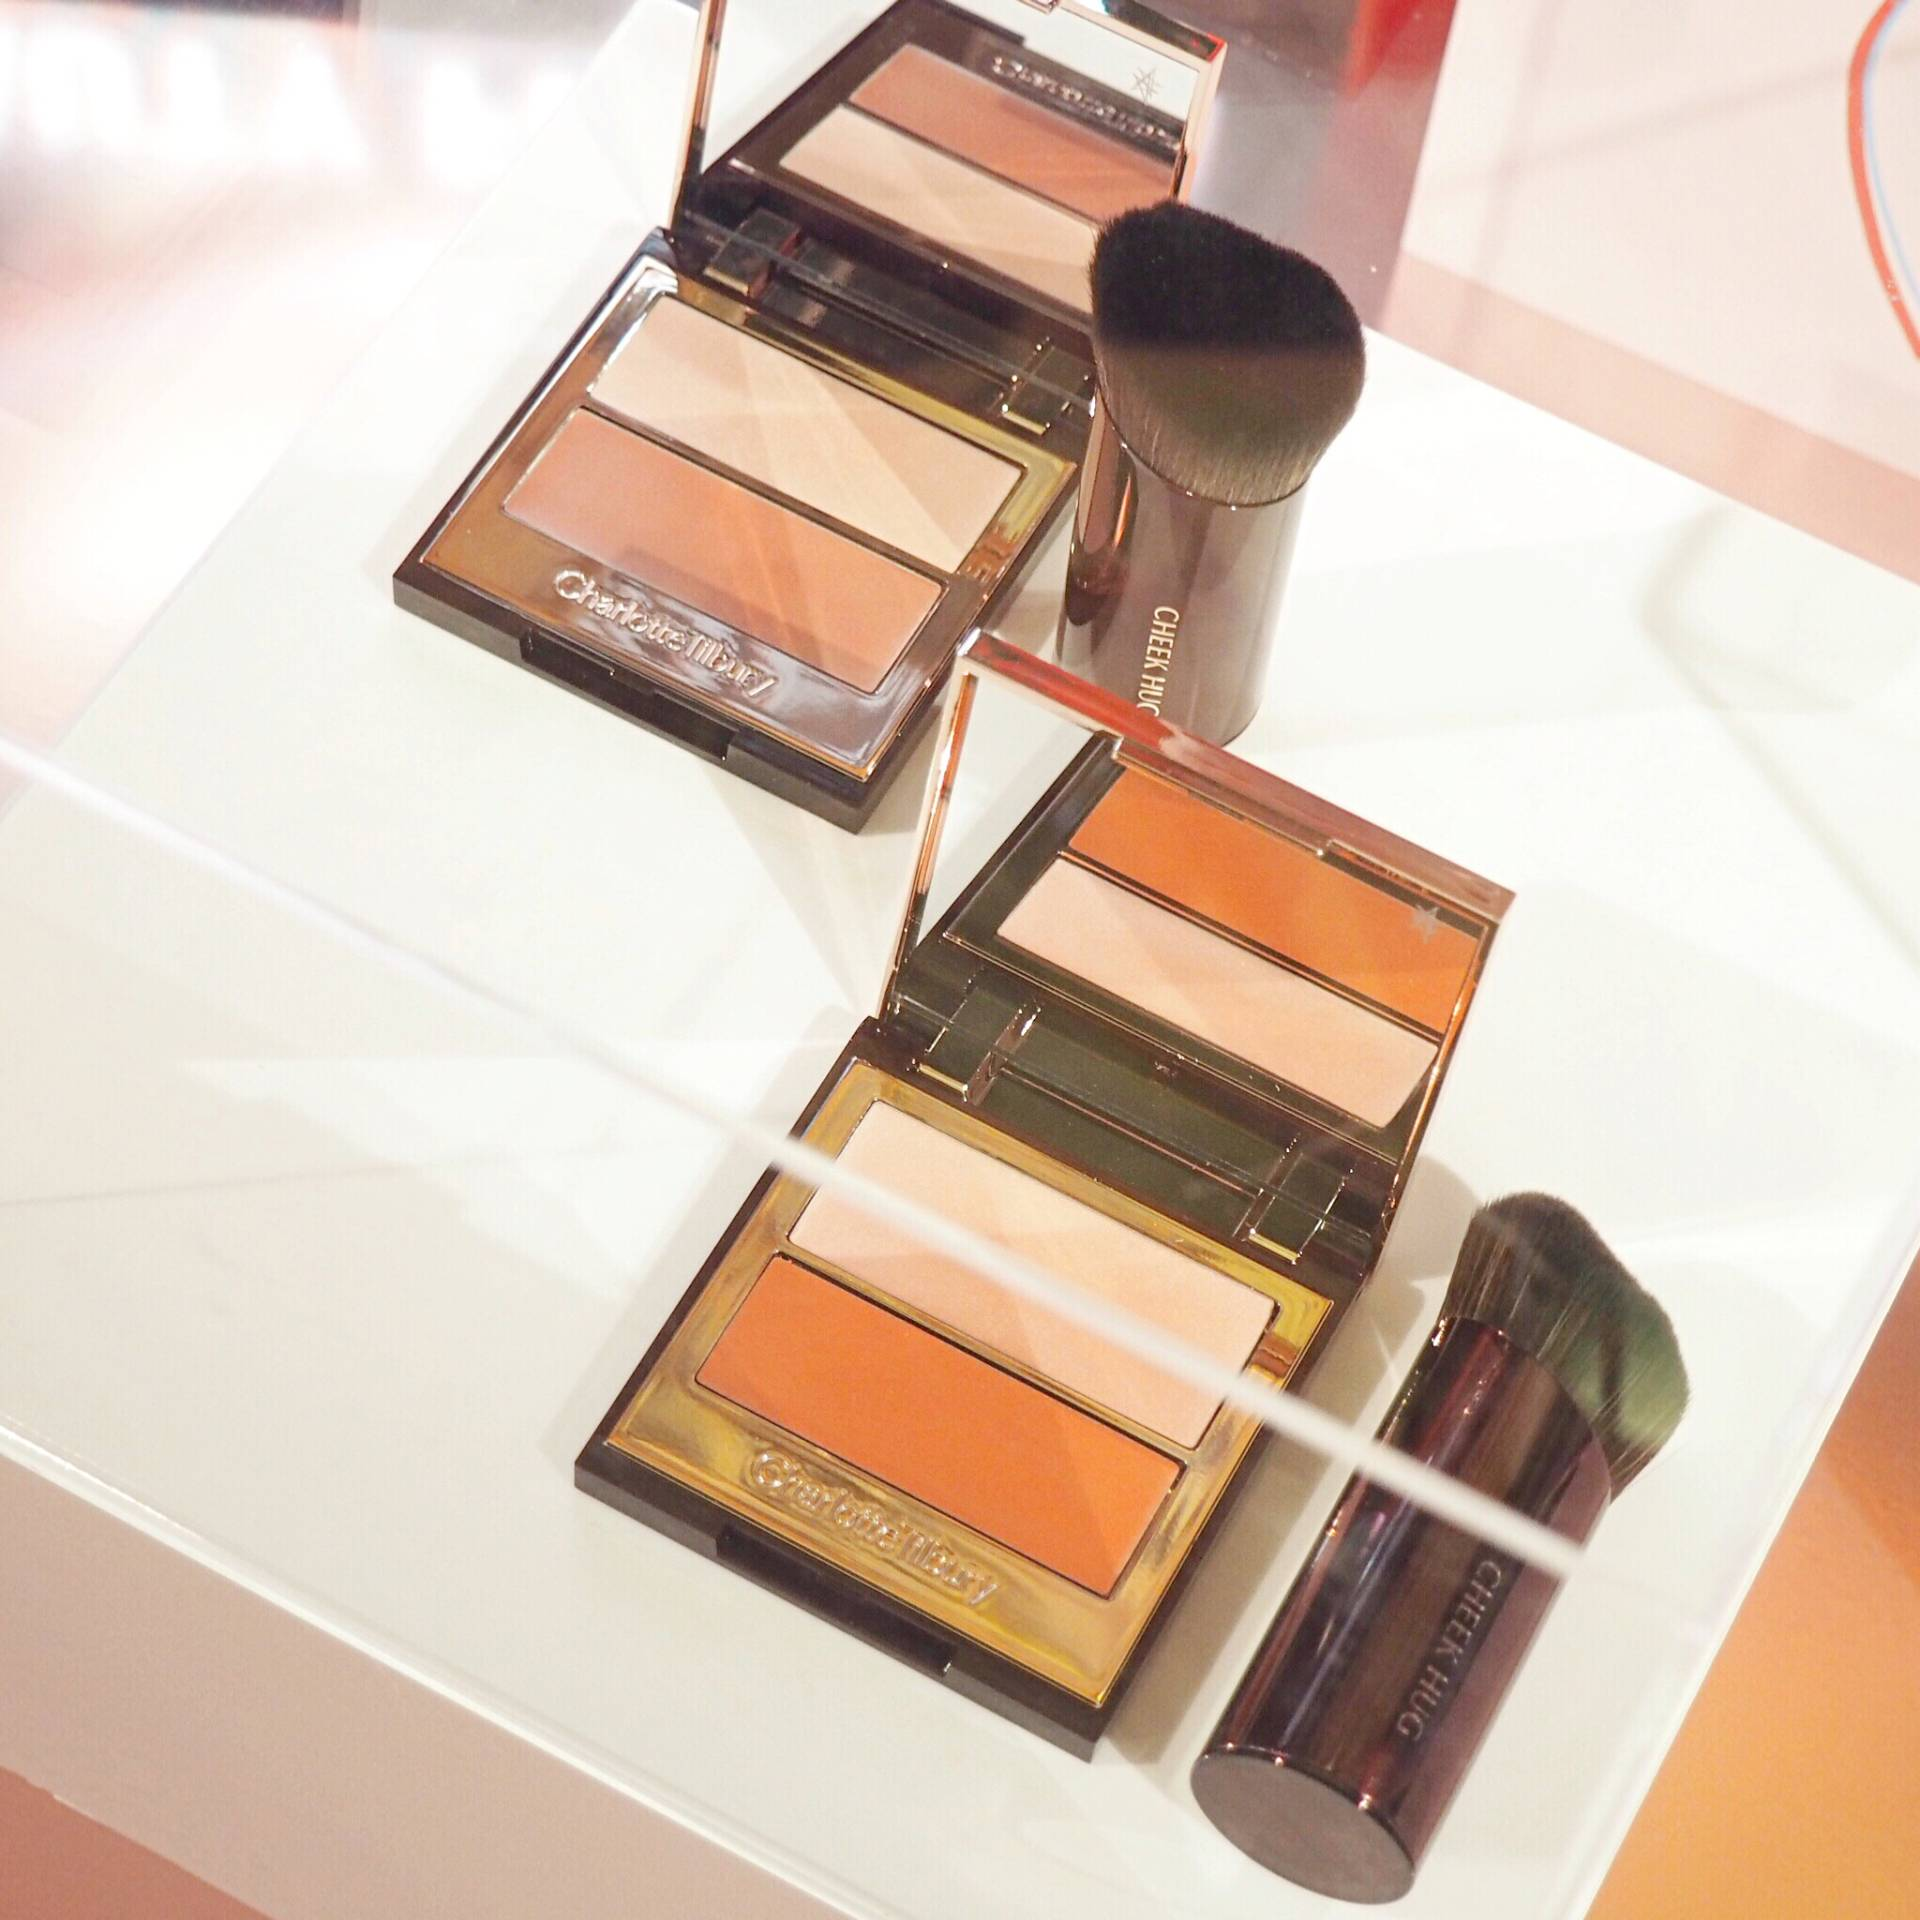 Charlotte Tilbury Pretty Youth Glow Cream Blusher and Highlighter Duo